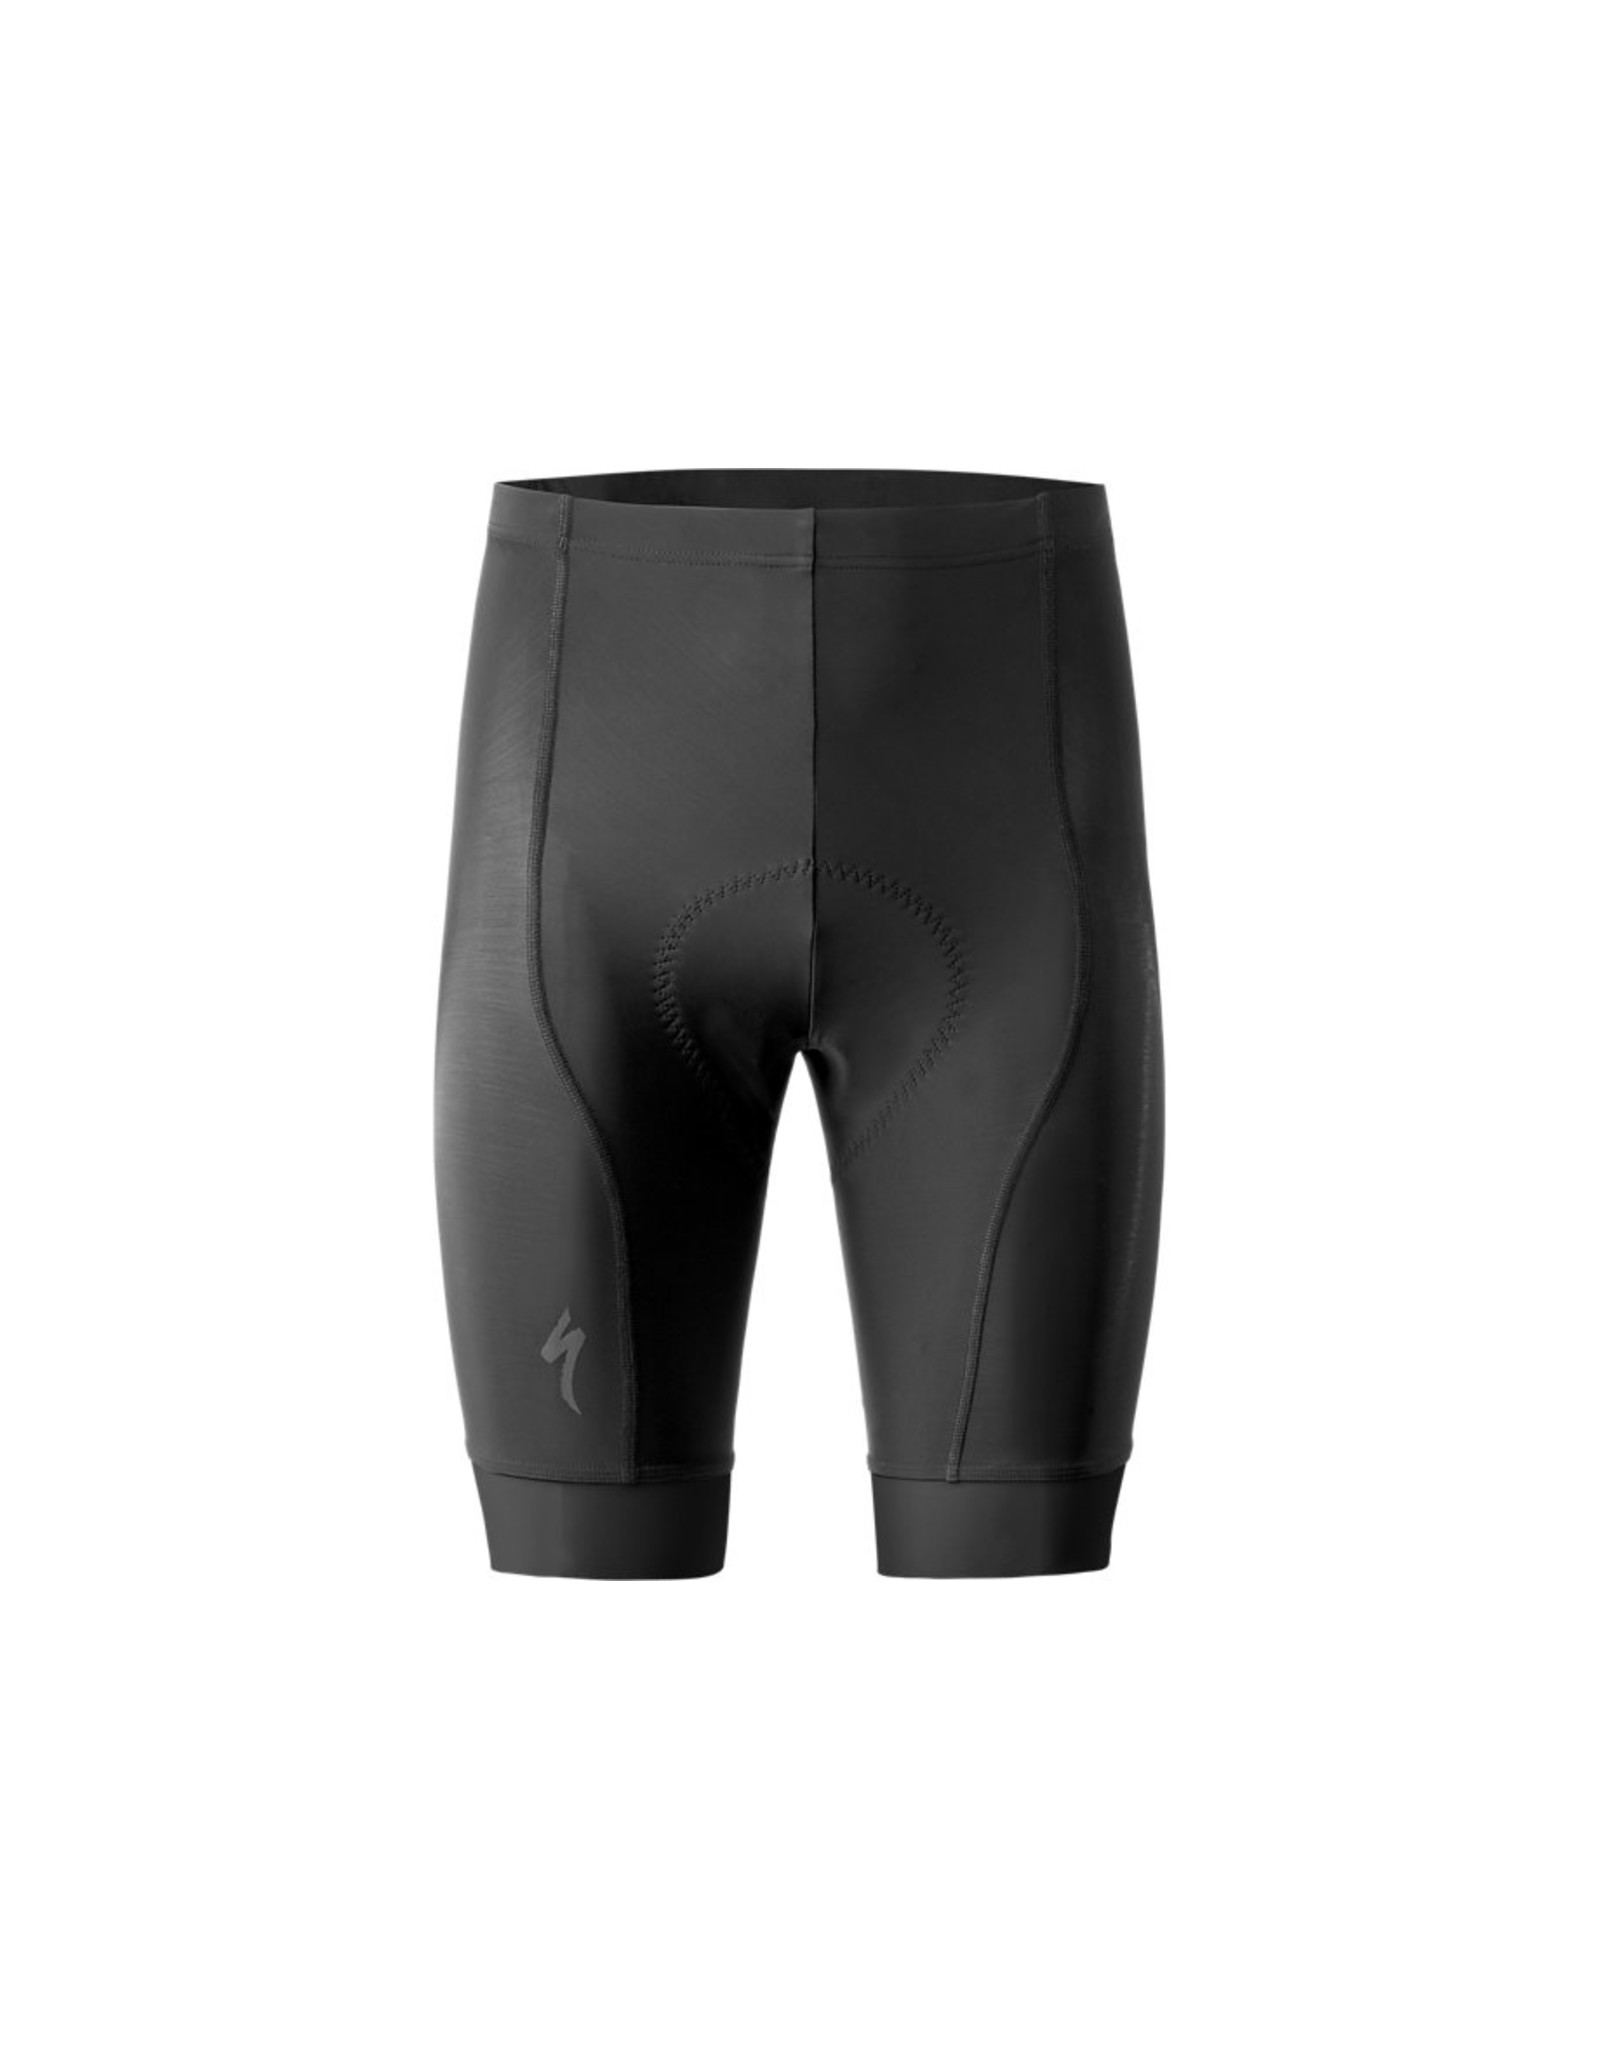 SPECIALIZED Specialized Men's RBX Shorts - Black